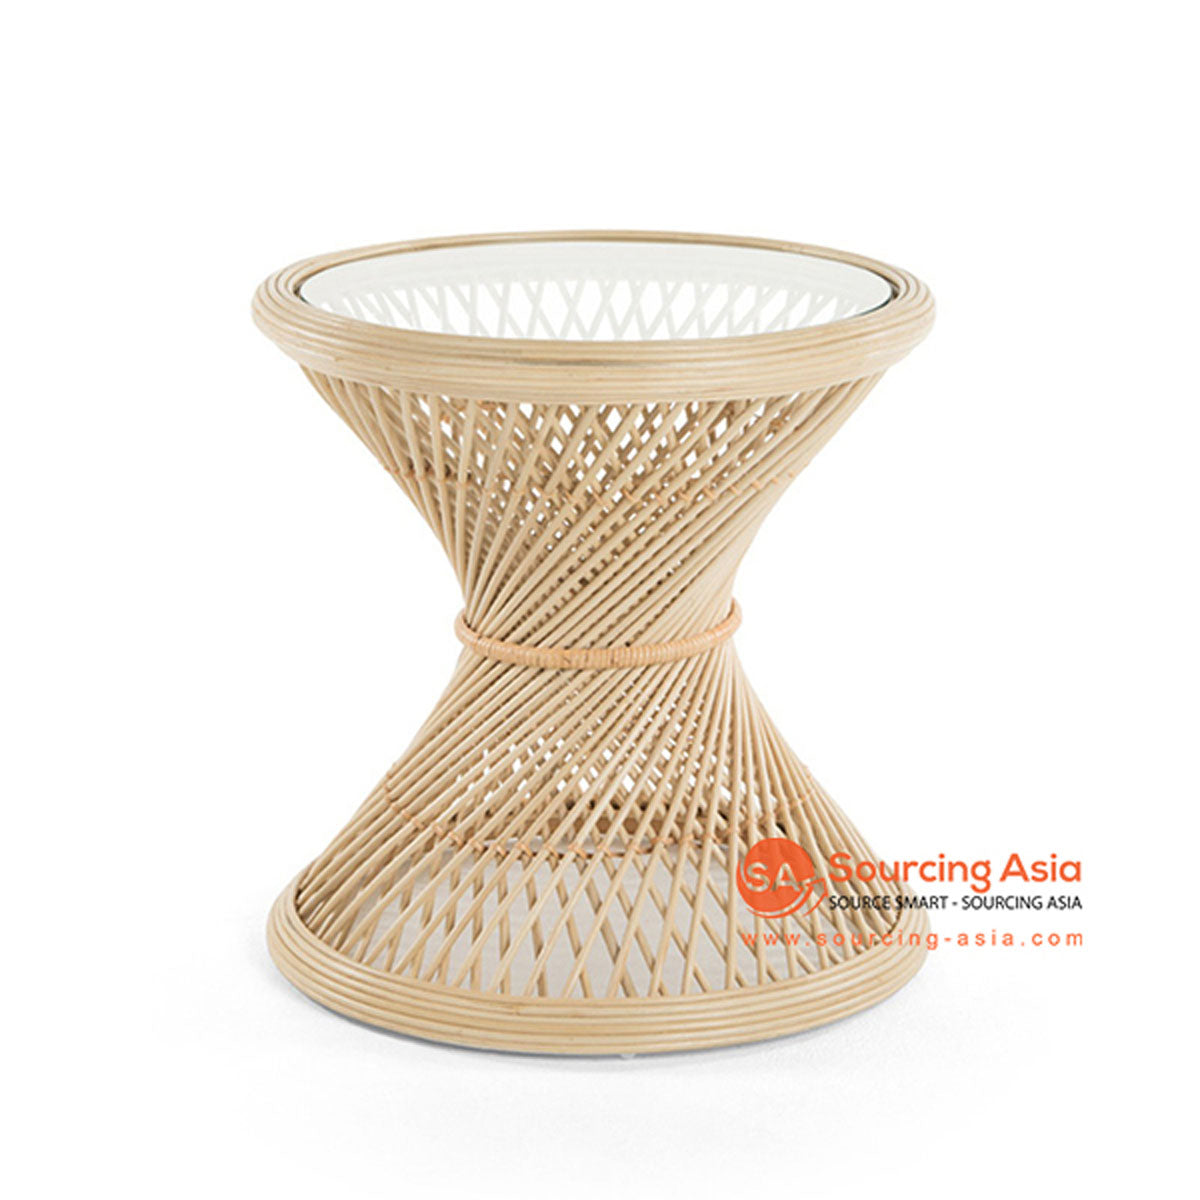 SHL149 NATURAL RATTAN TWISTED TABLE WITH ROUND TOP AND INSERTED GLASS